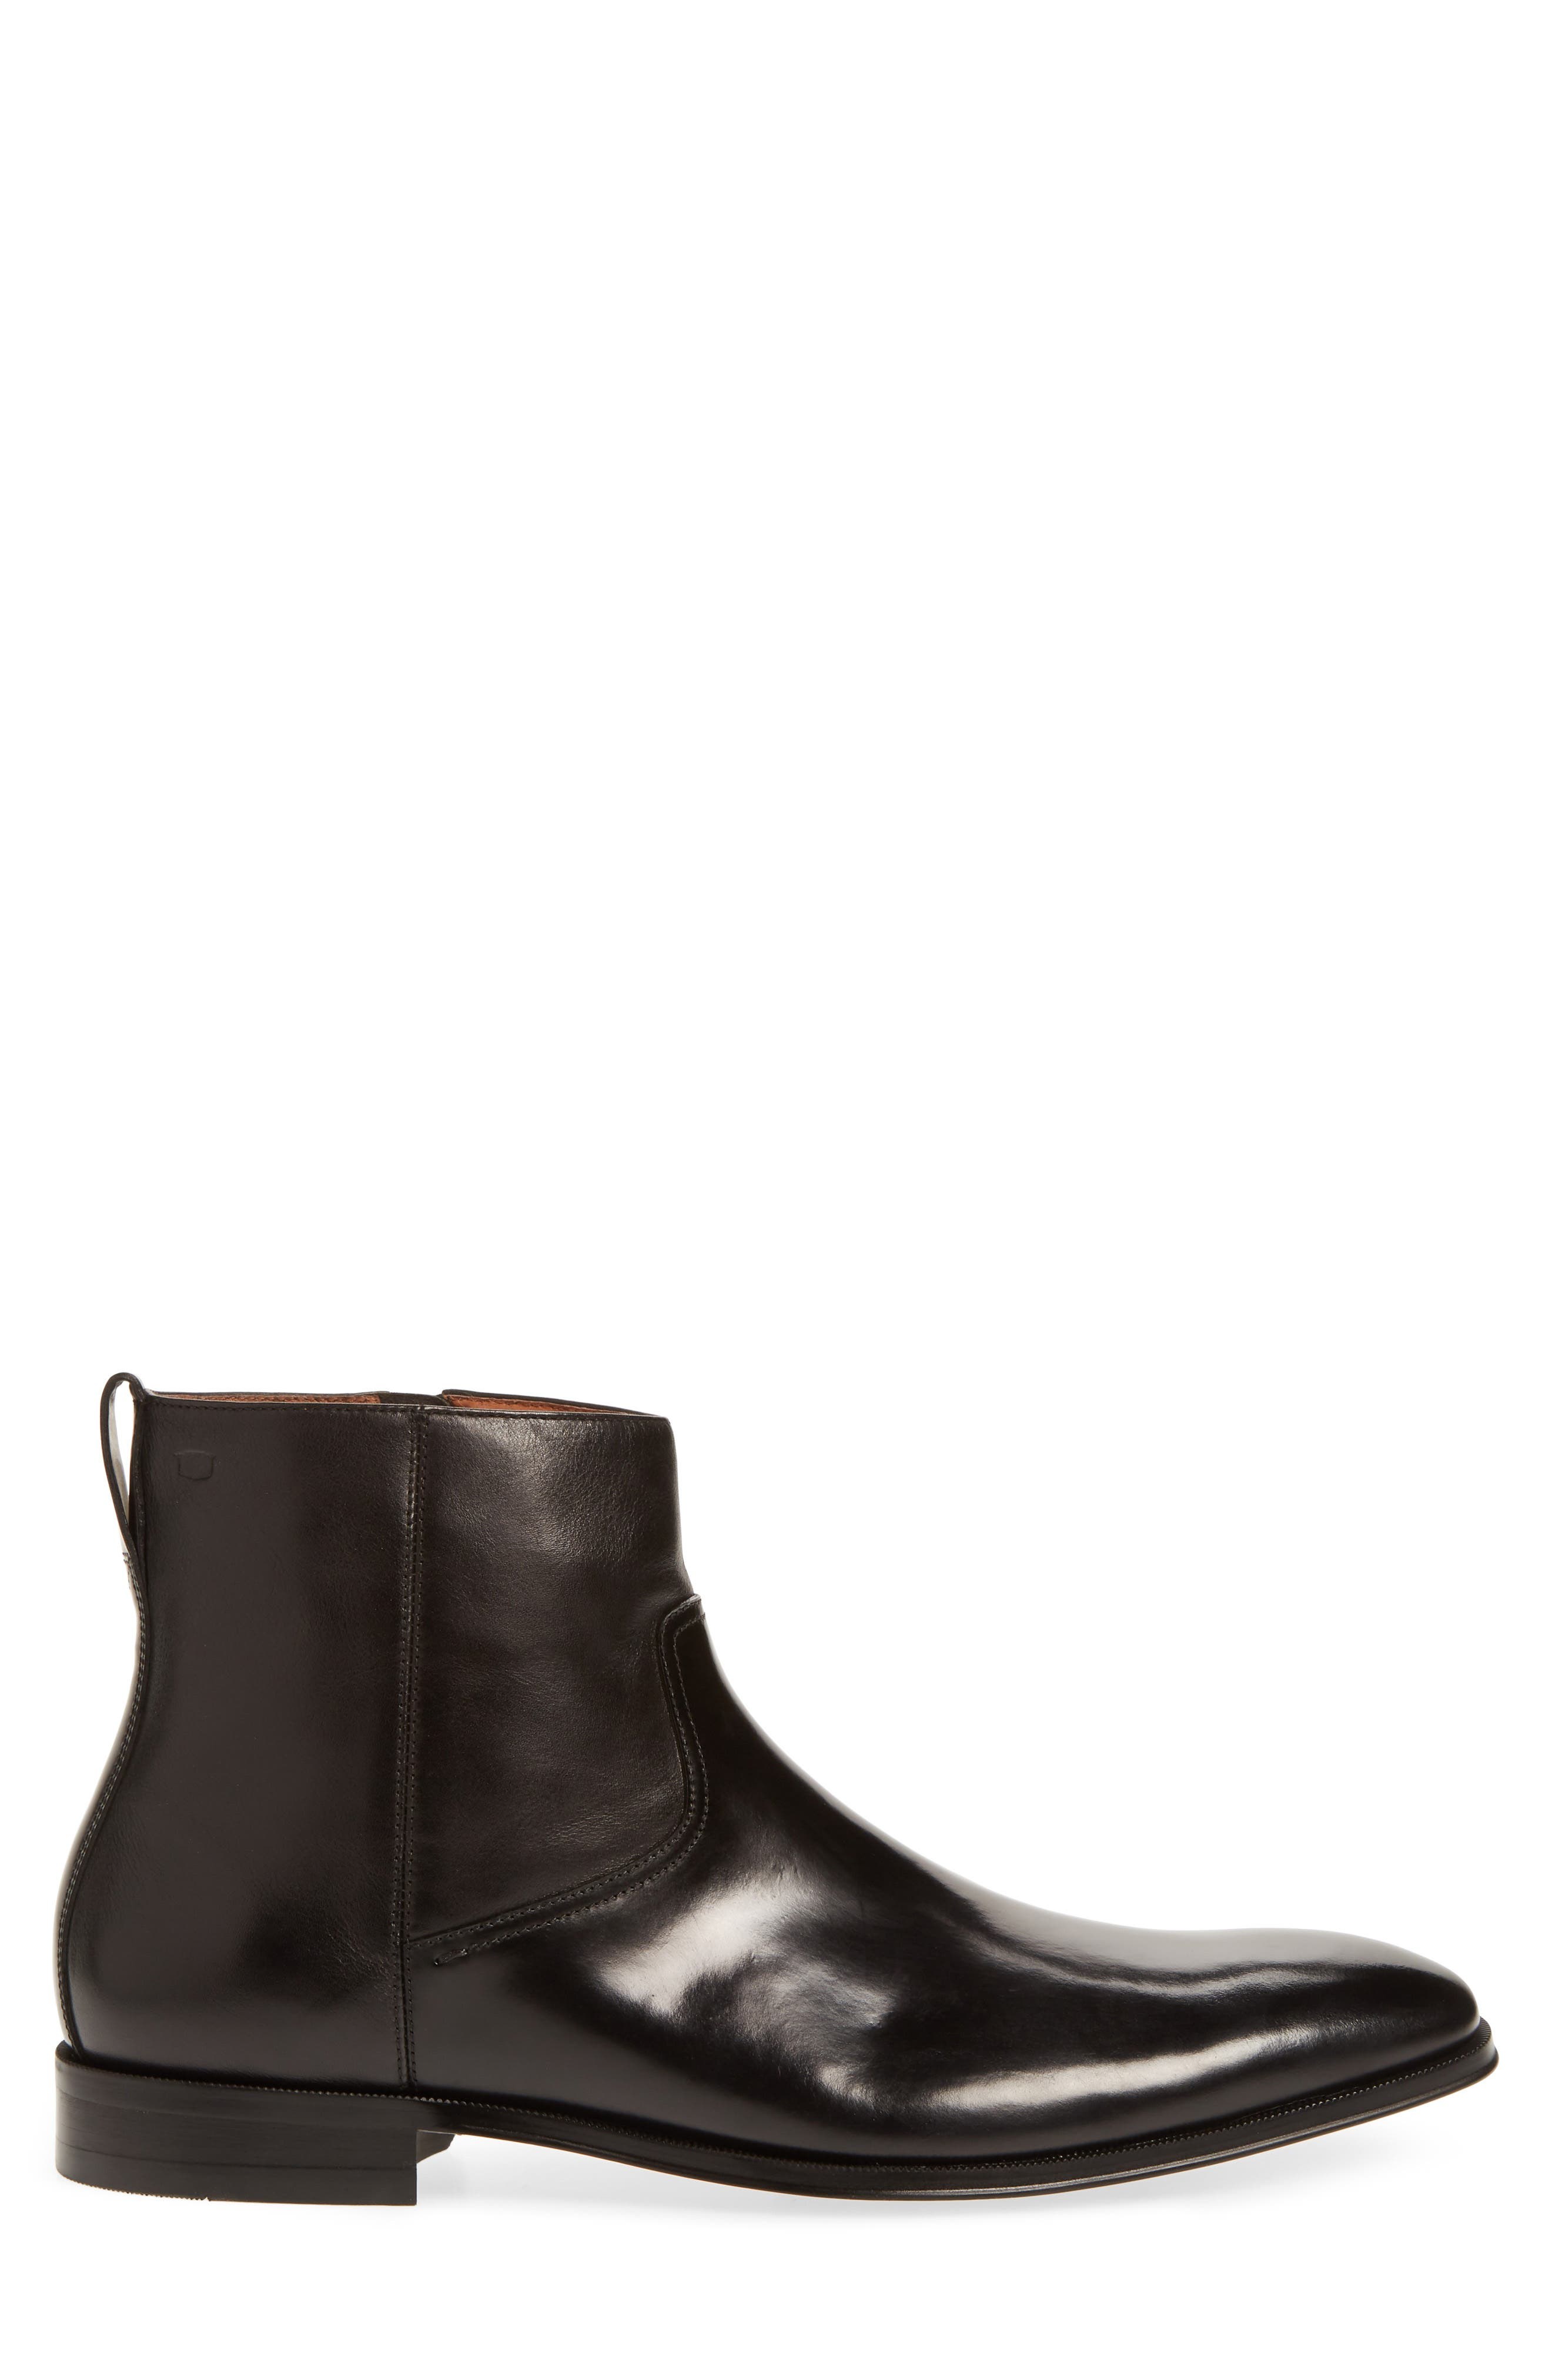 Belfast Mid Zip Boot,                             Alternate thumbnail 3, color,                             BLACK LEATHER